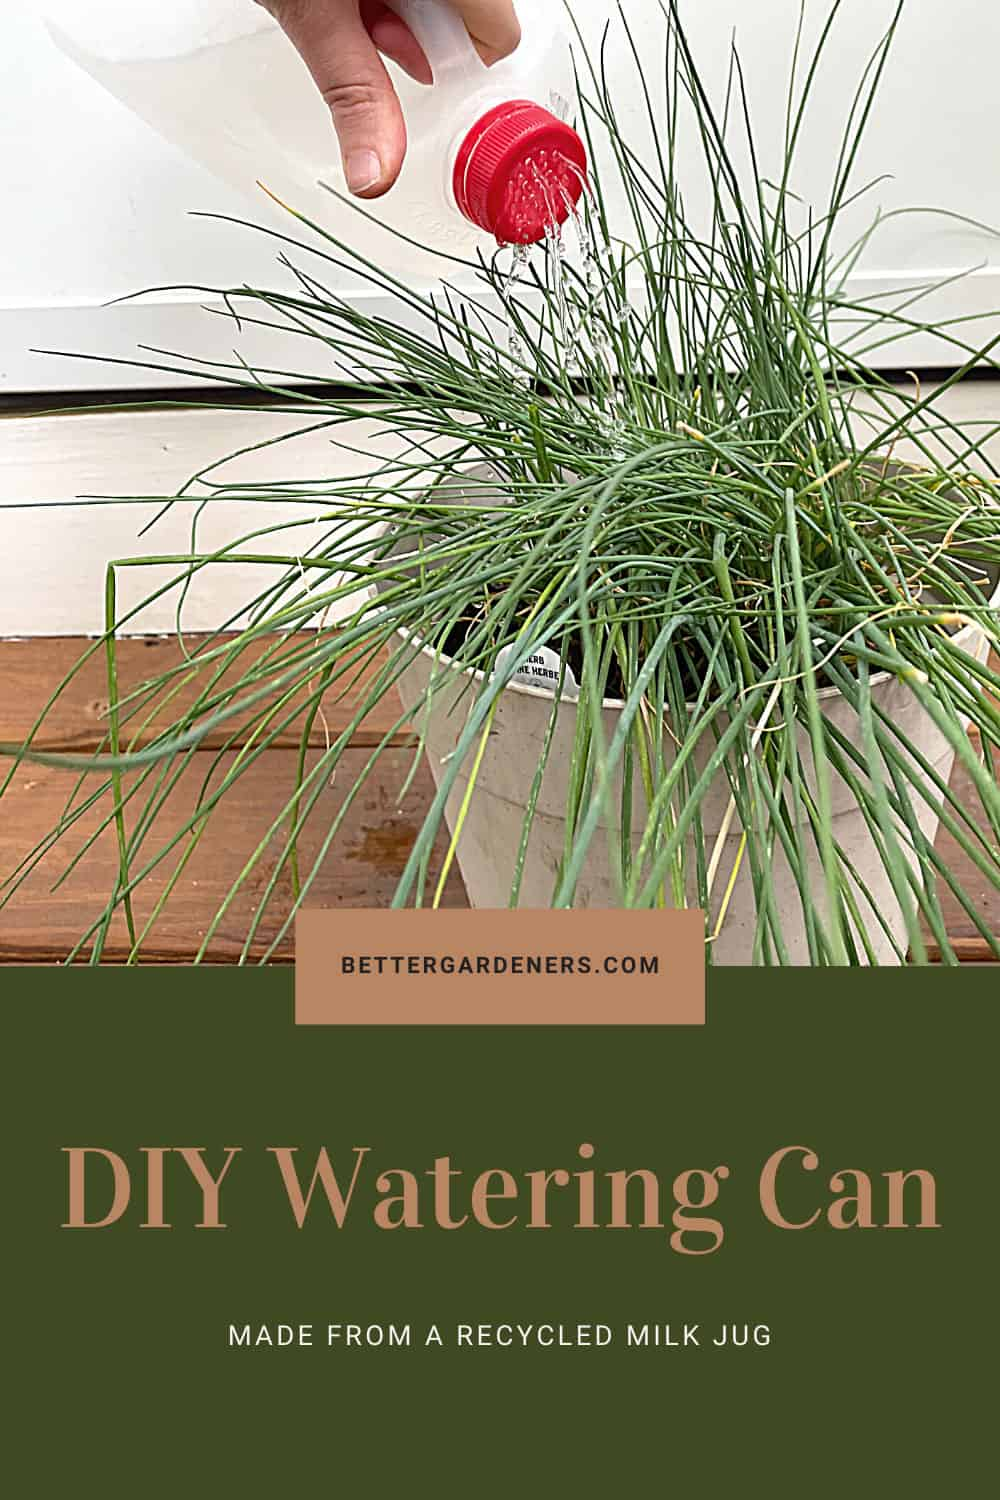 How to Make a DIY Watering Can from a Recycled Milk Jug